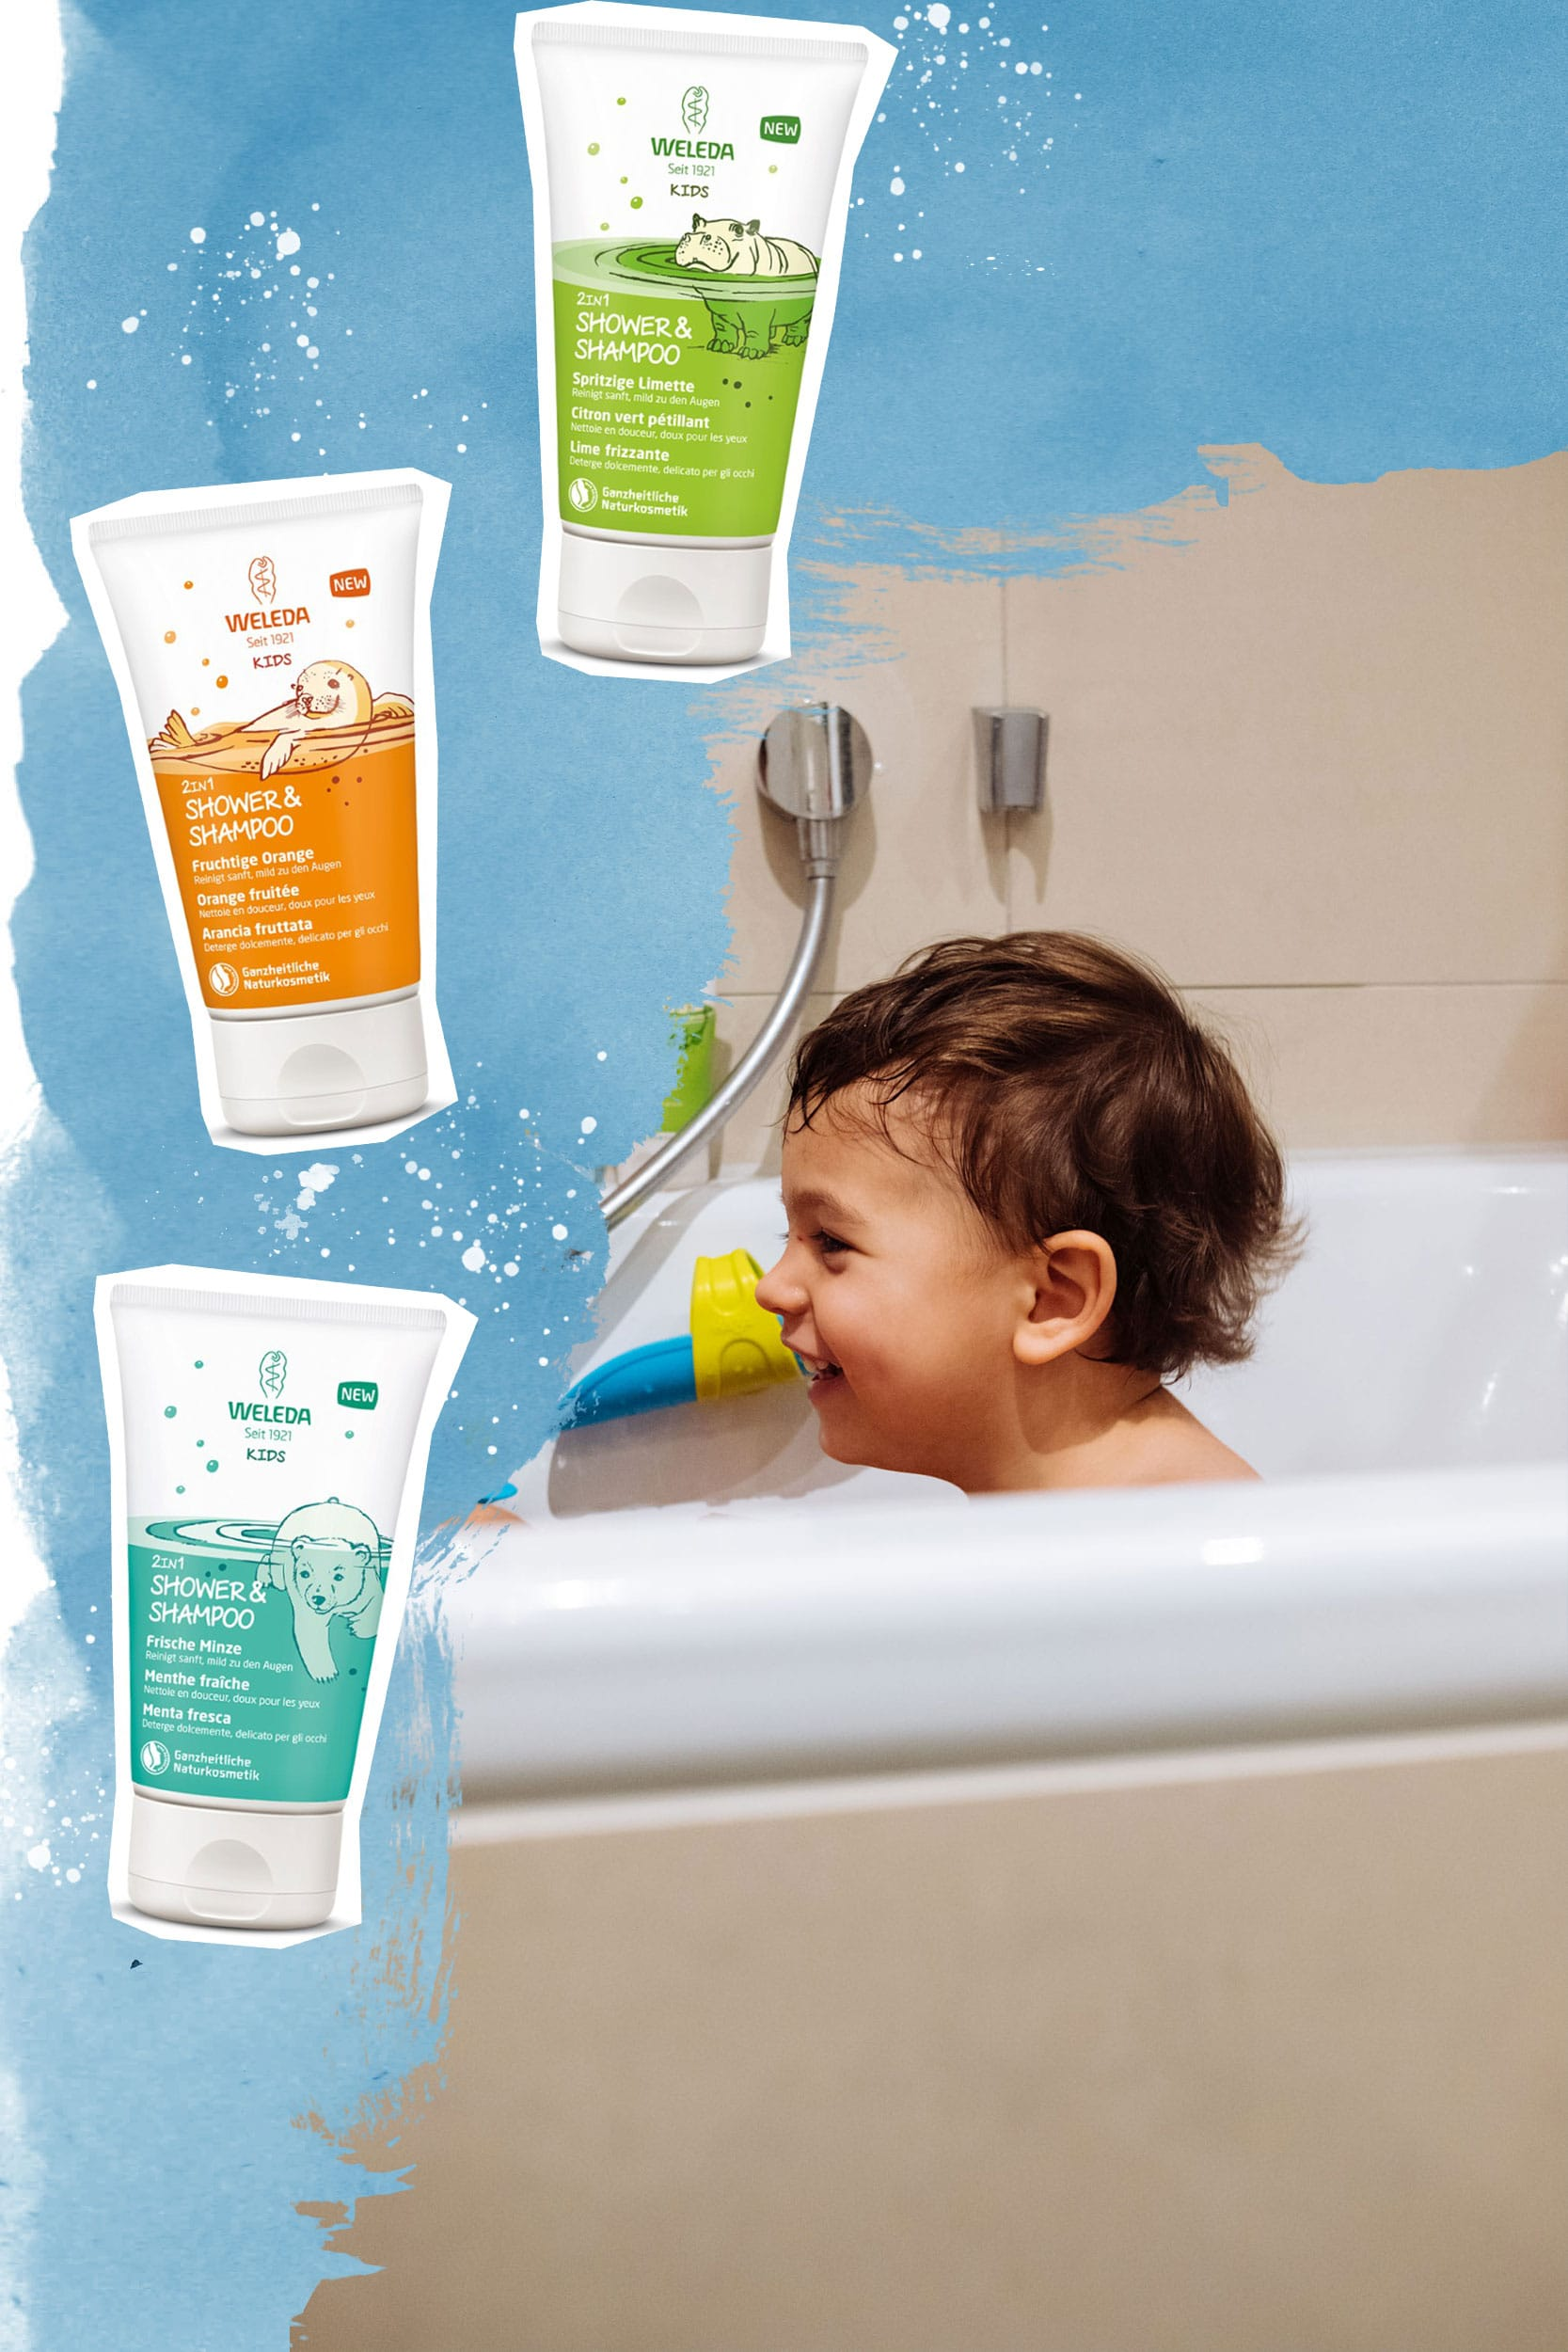 Weleda KIDS 2 in 1 Shower & Shampoo